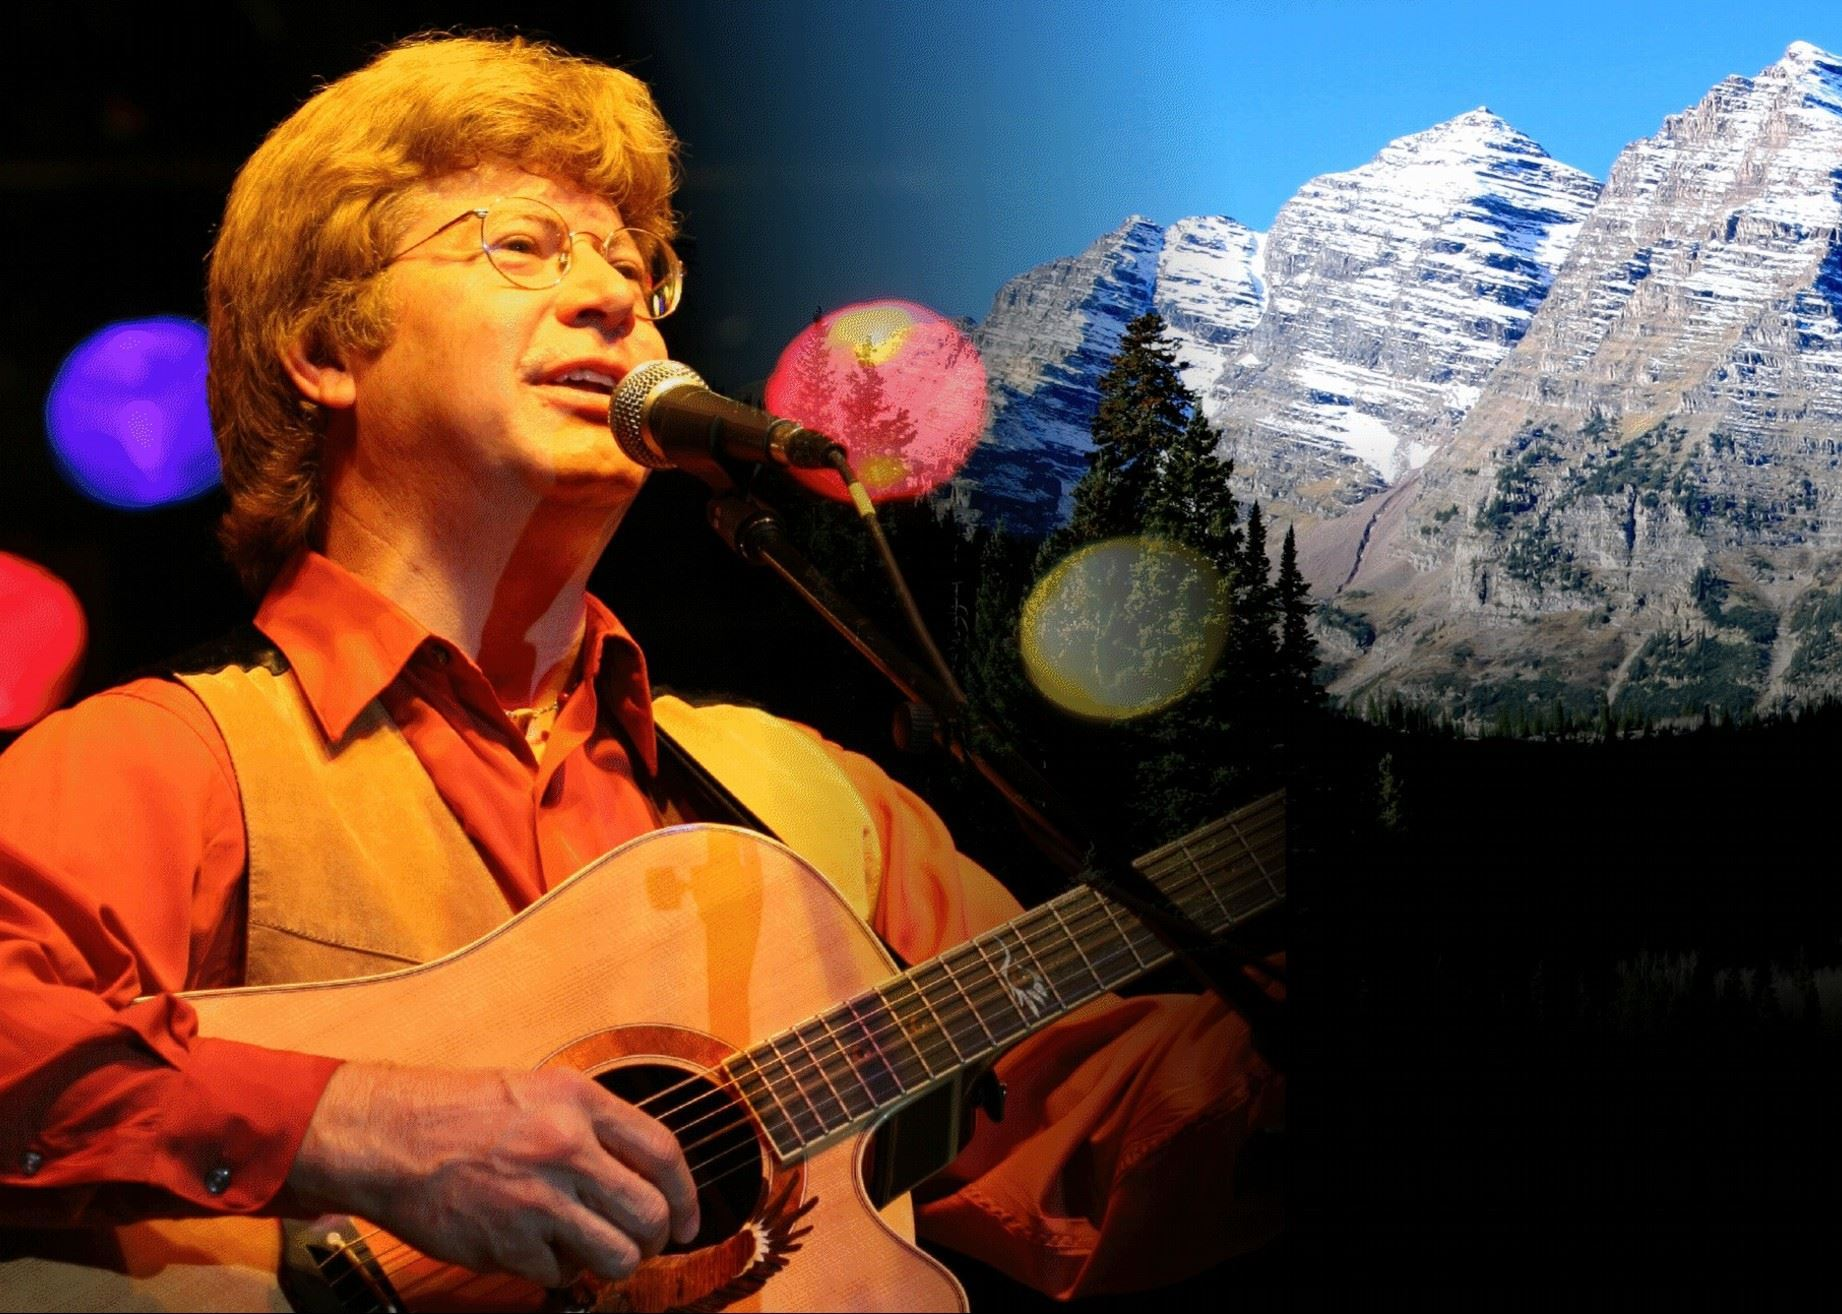 Take Me Home - the Music of John Denver - Starring Jim Curry